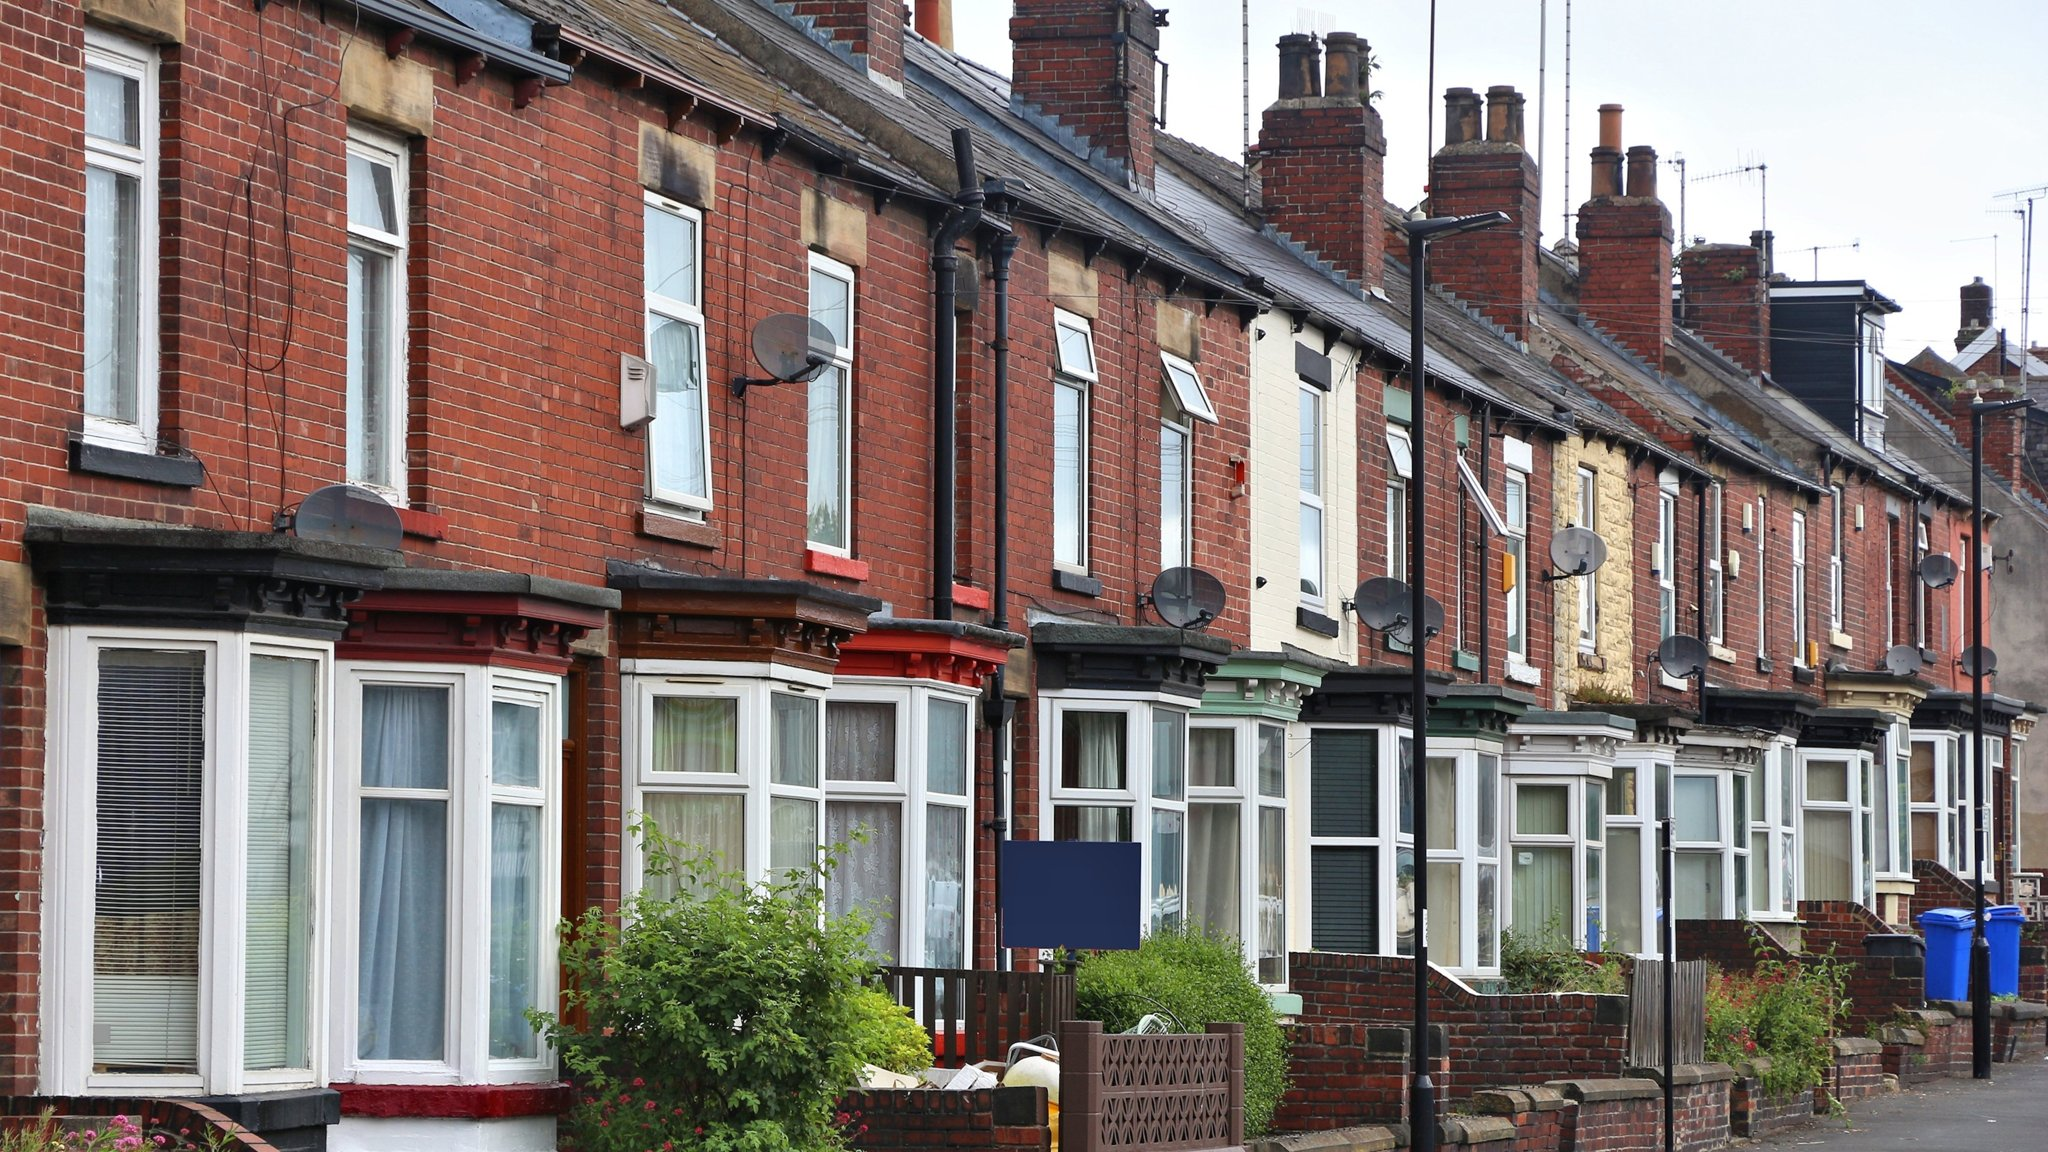 Coronavirus fears hit UK property market as viewings dry up ...